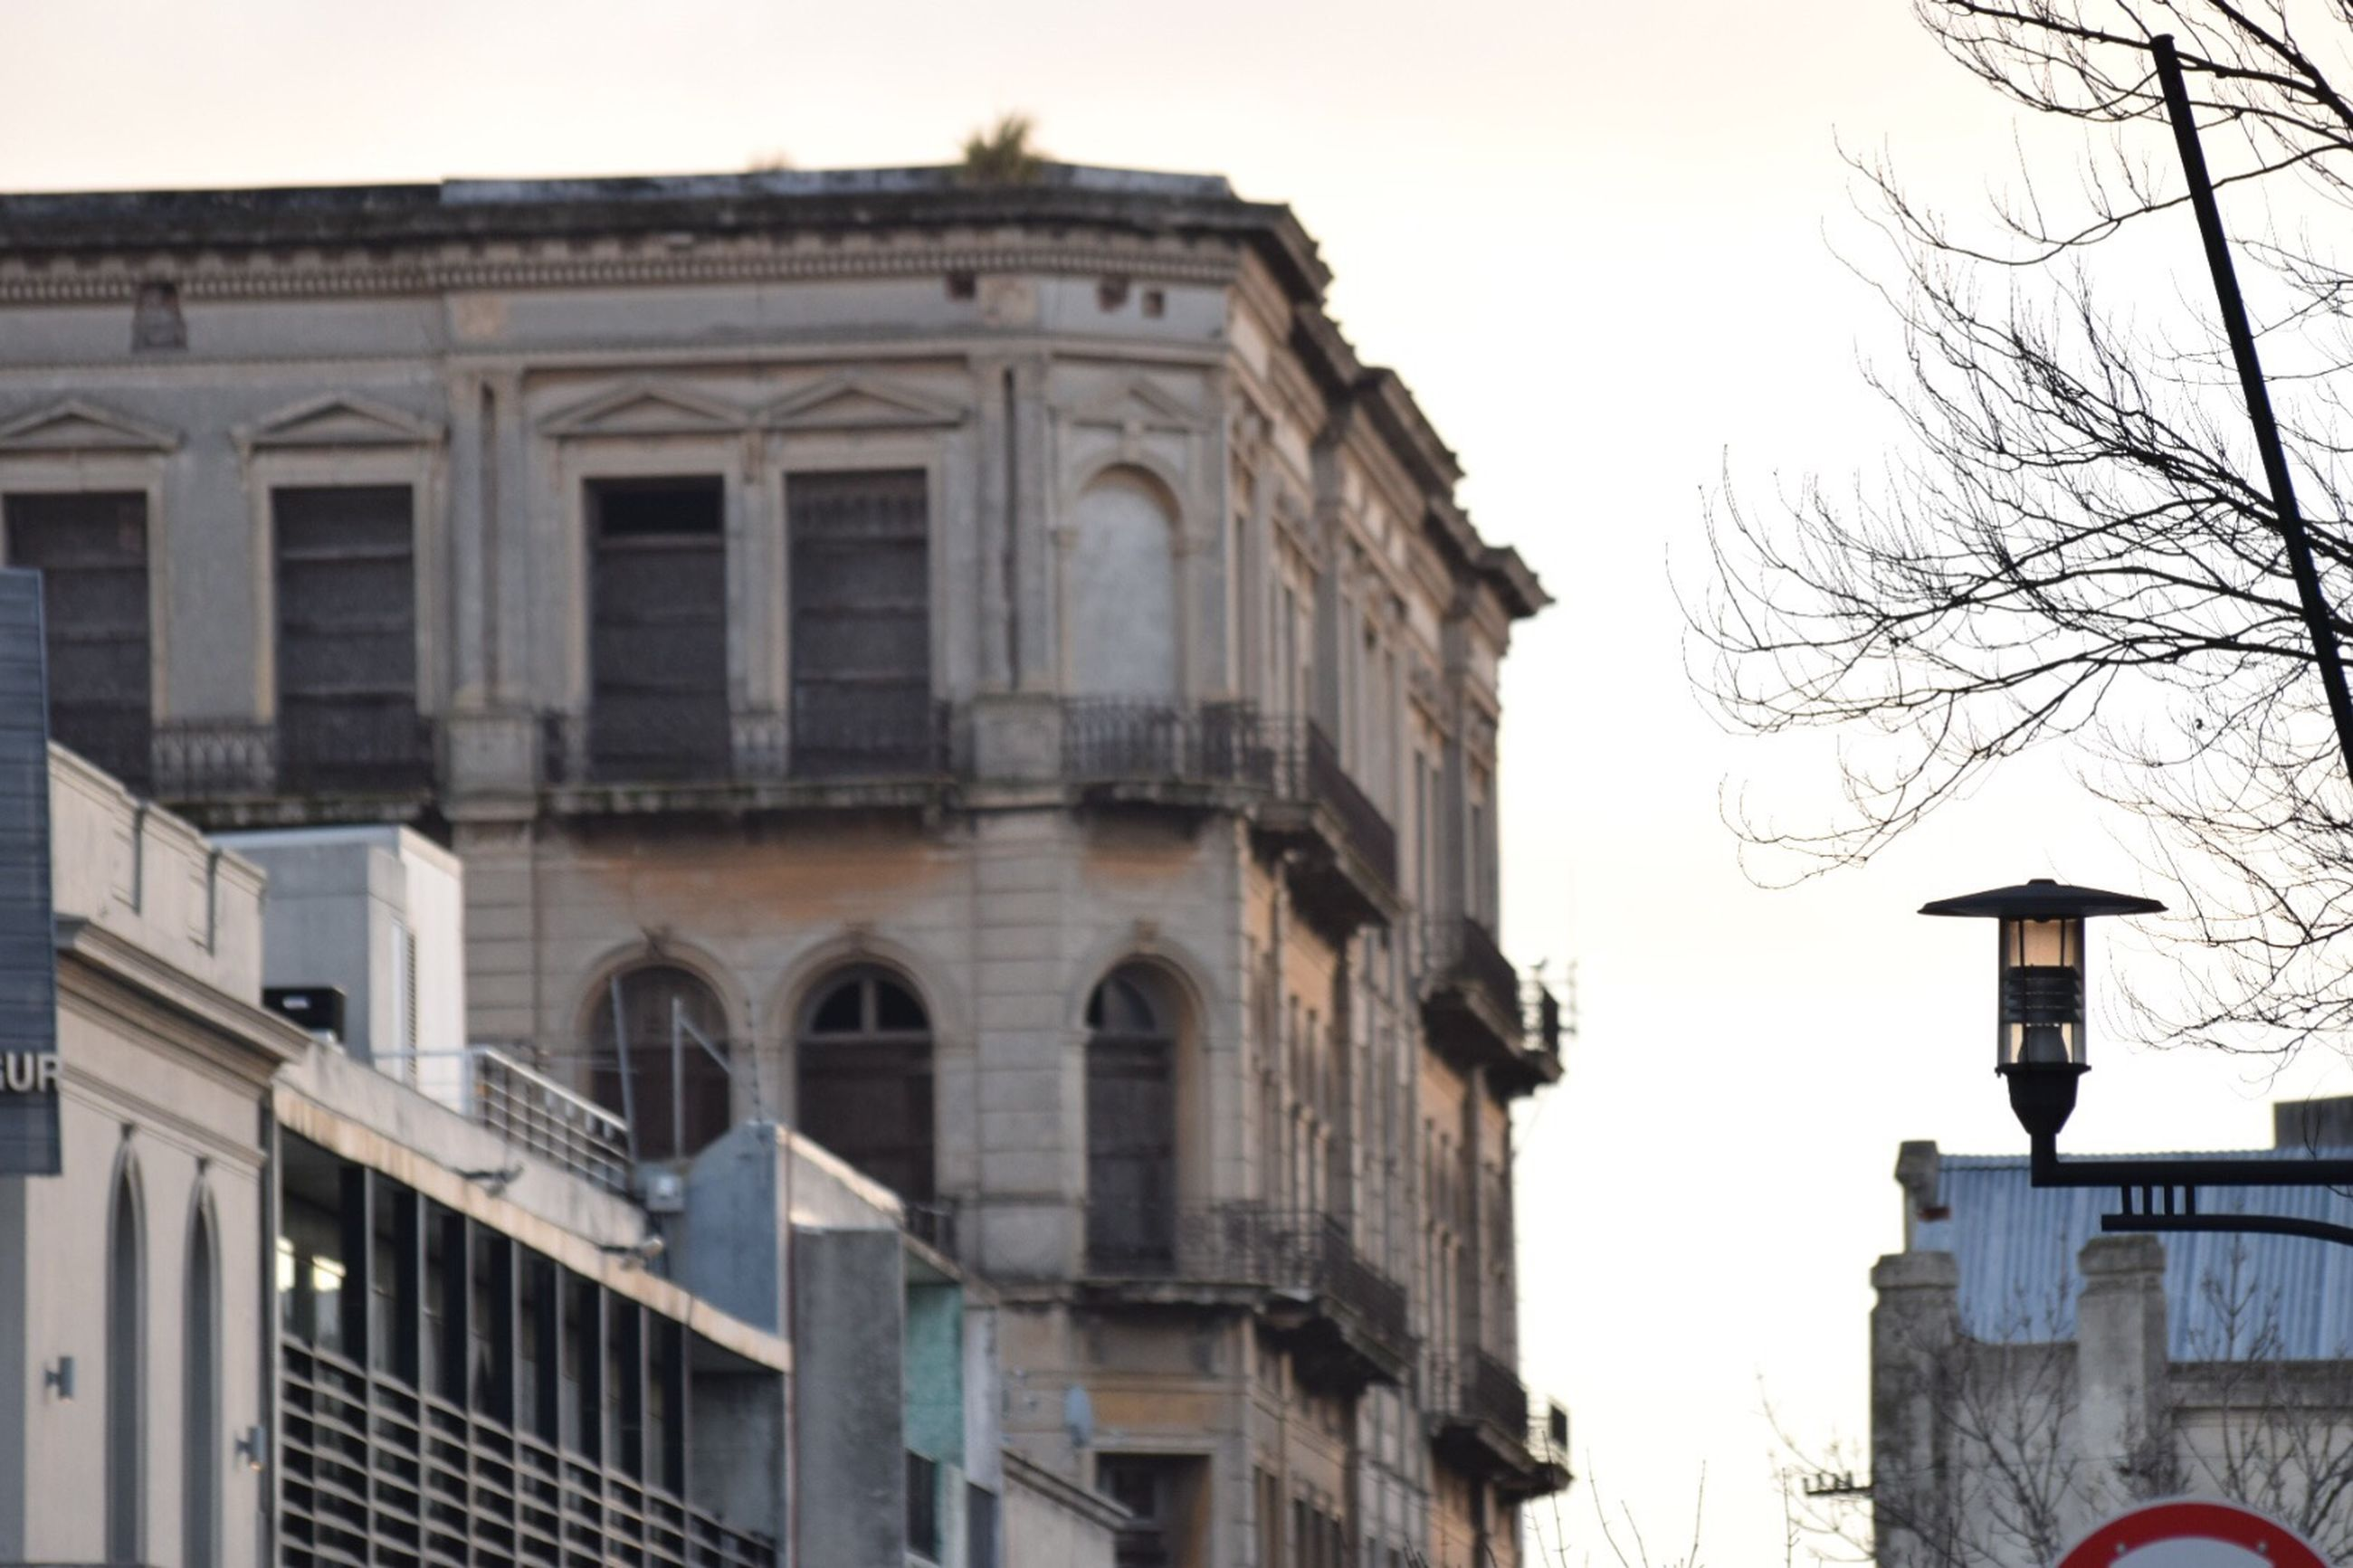 building exterior, architecture, built structure, building, sky, nature, no people, low angle view, day, outdoors, tree, city, bare tree, clear sky, window, residential district, history, plant, the past, street